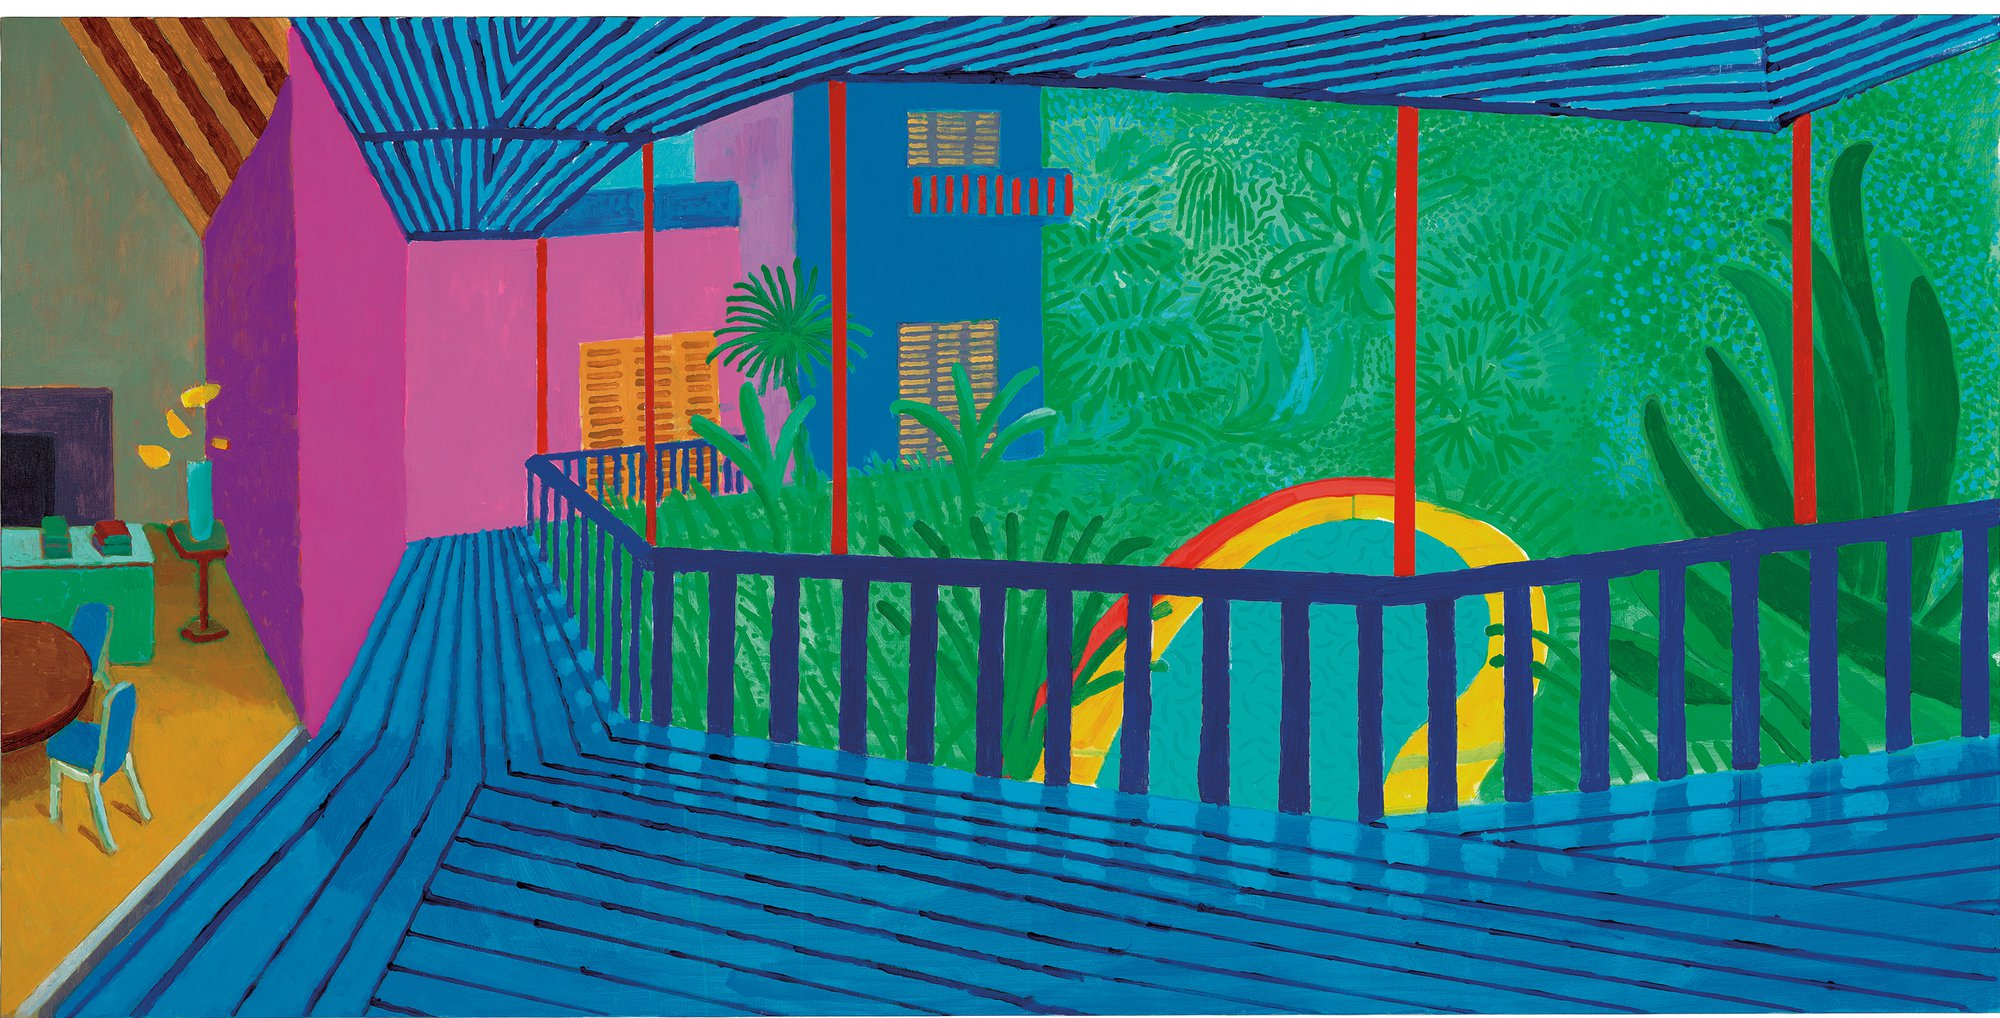 David Hockney | Pace Gallery